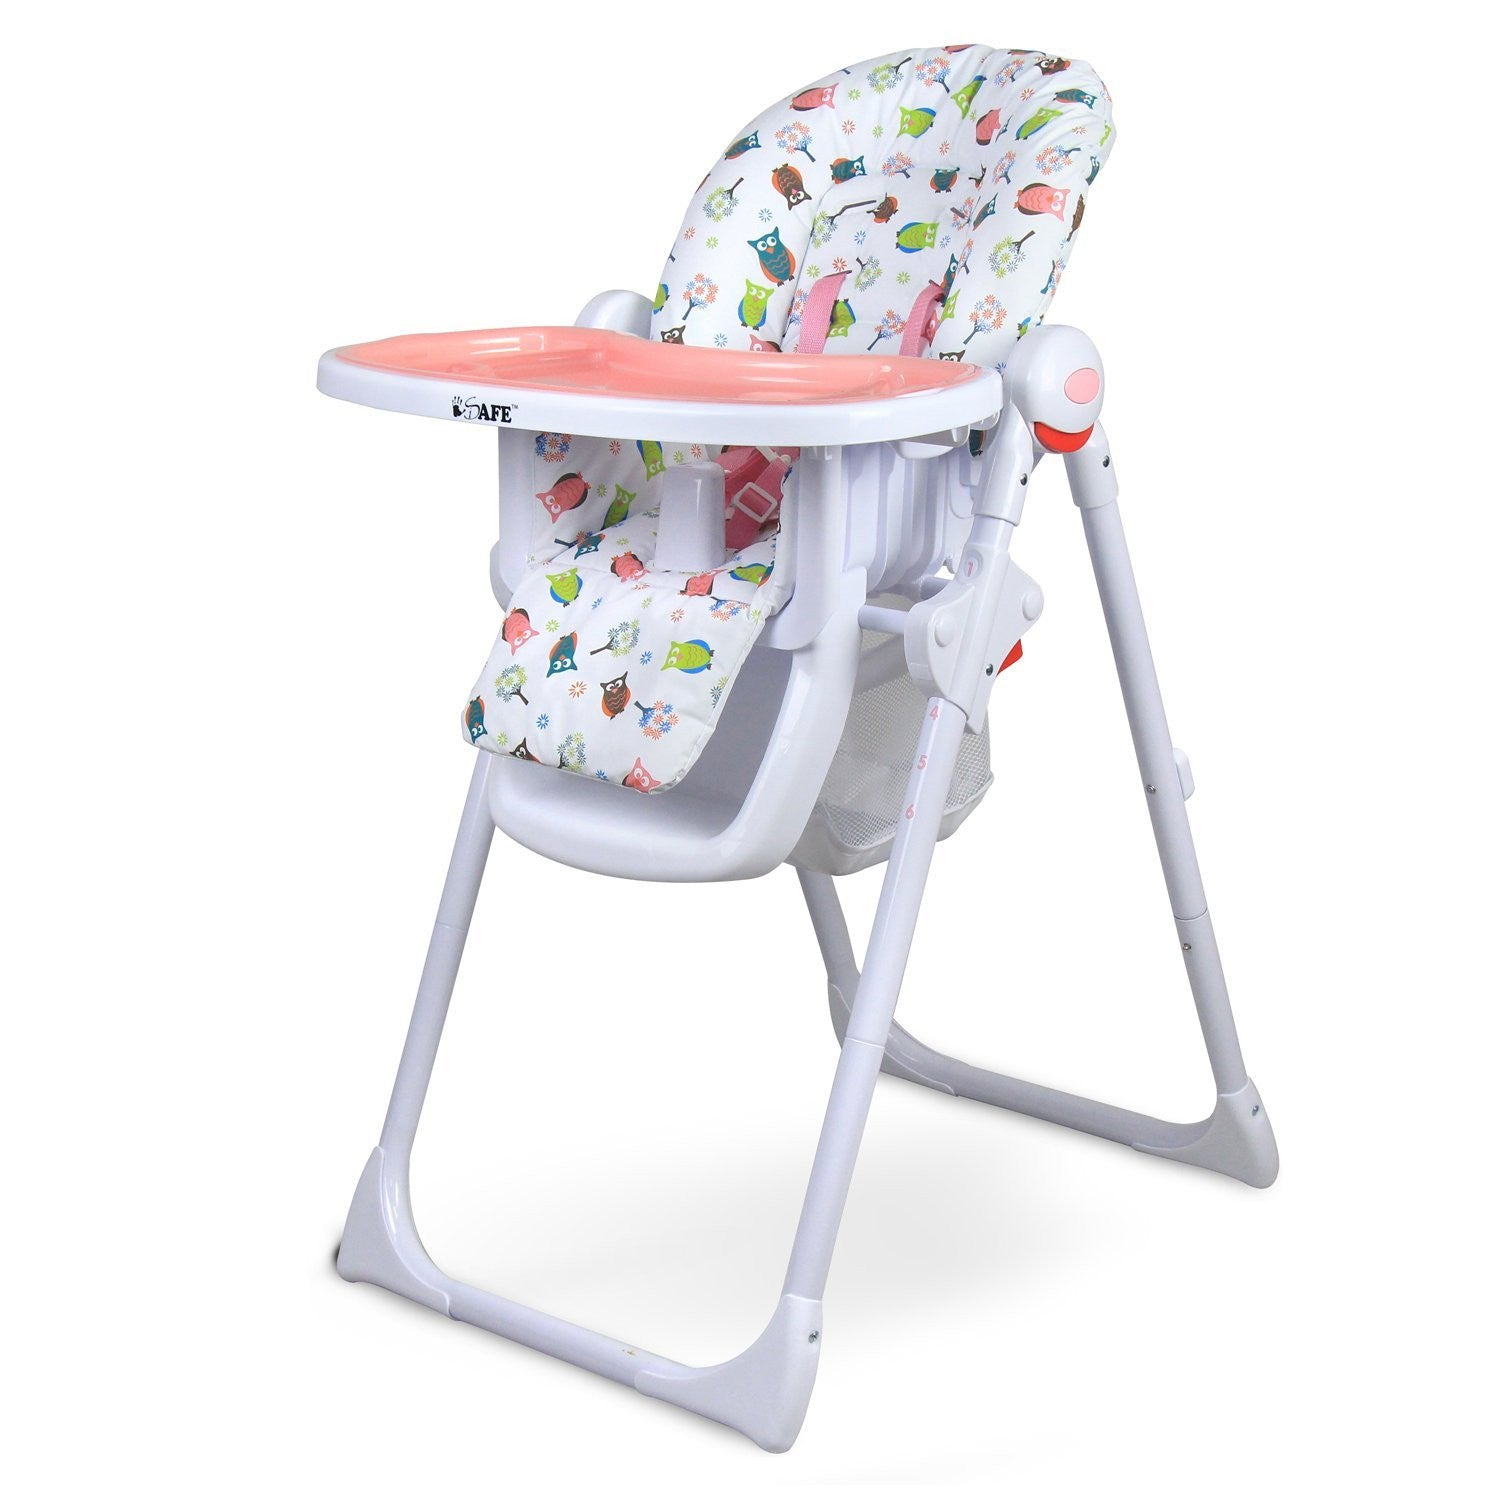 ISafe MAMA Highchair   Twilight Recline Compact With Double Tray U0026 Storage  Basket   Baby Travel